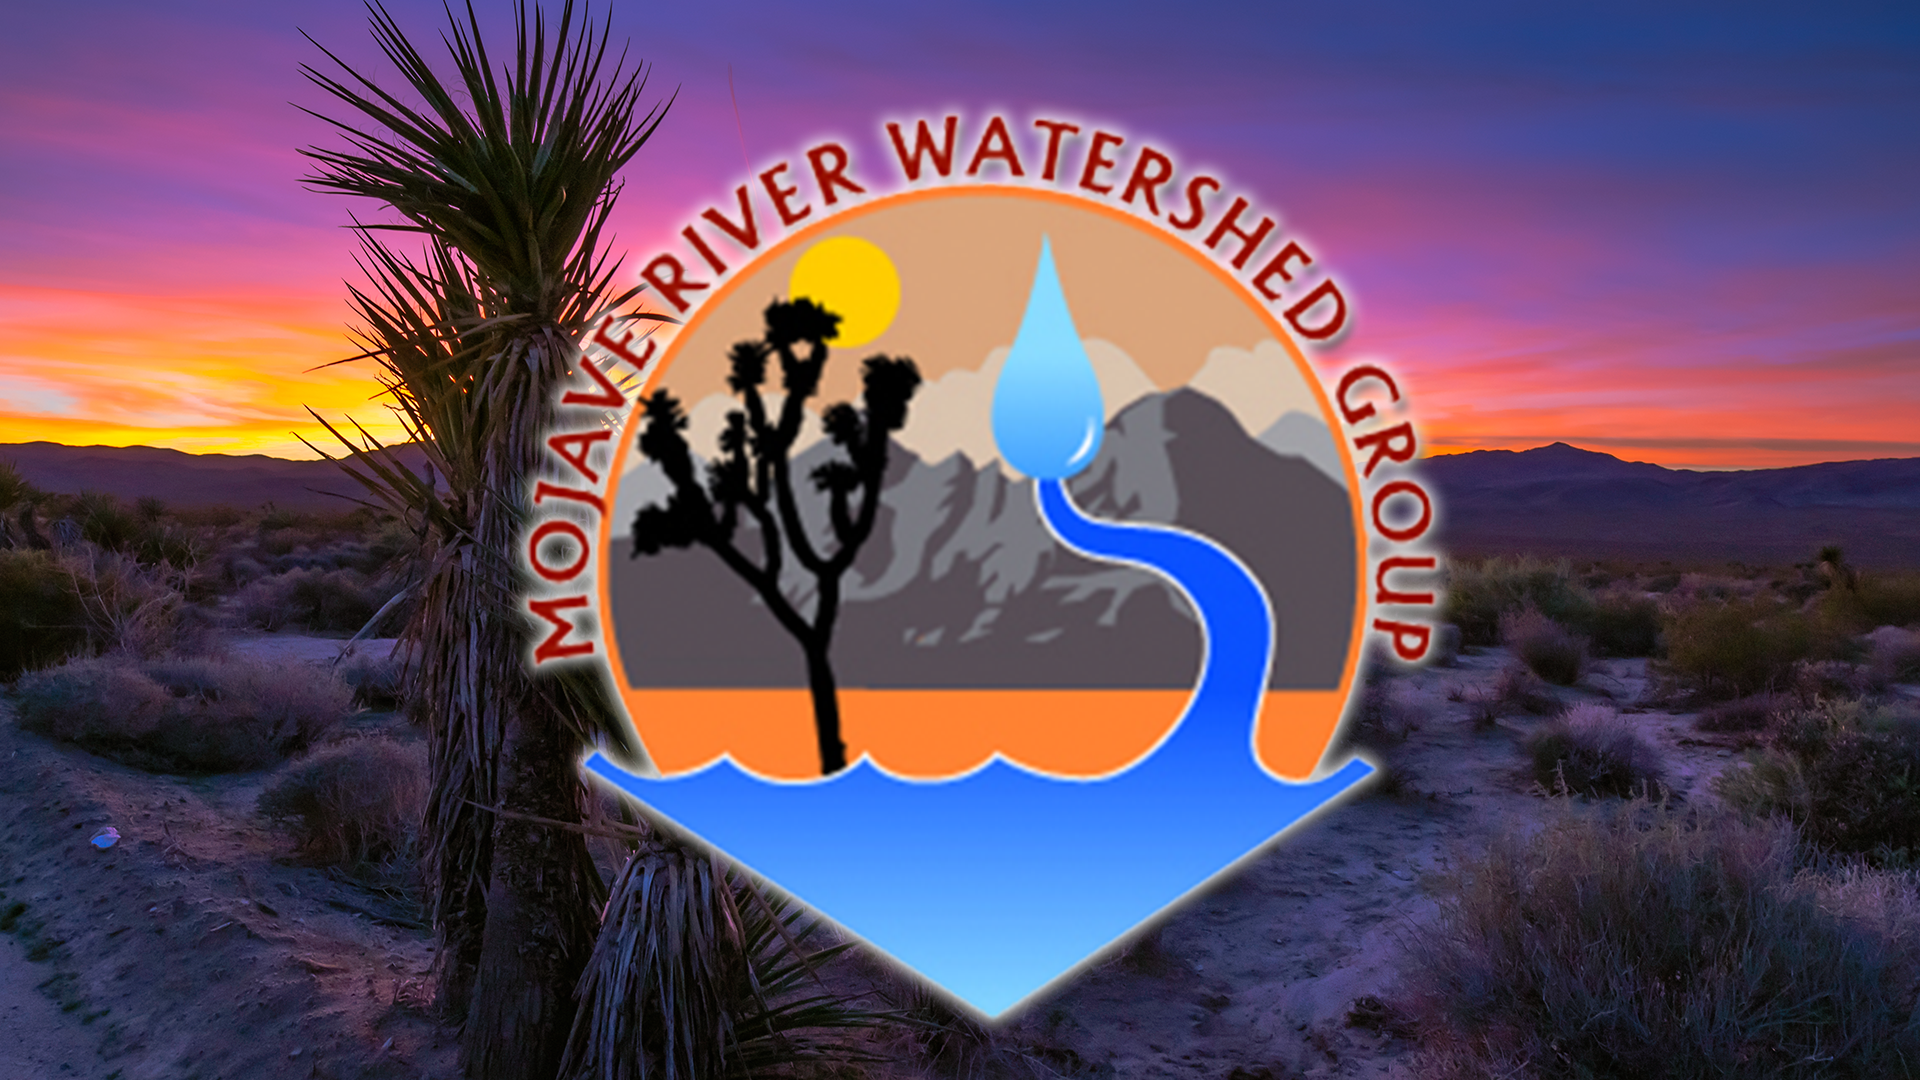 Mojave River Watershed Group